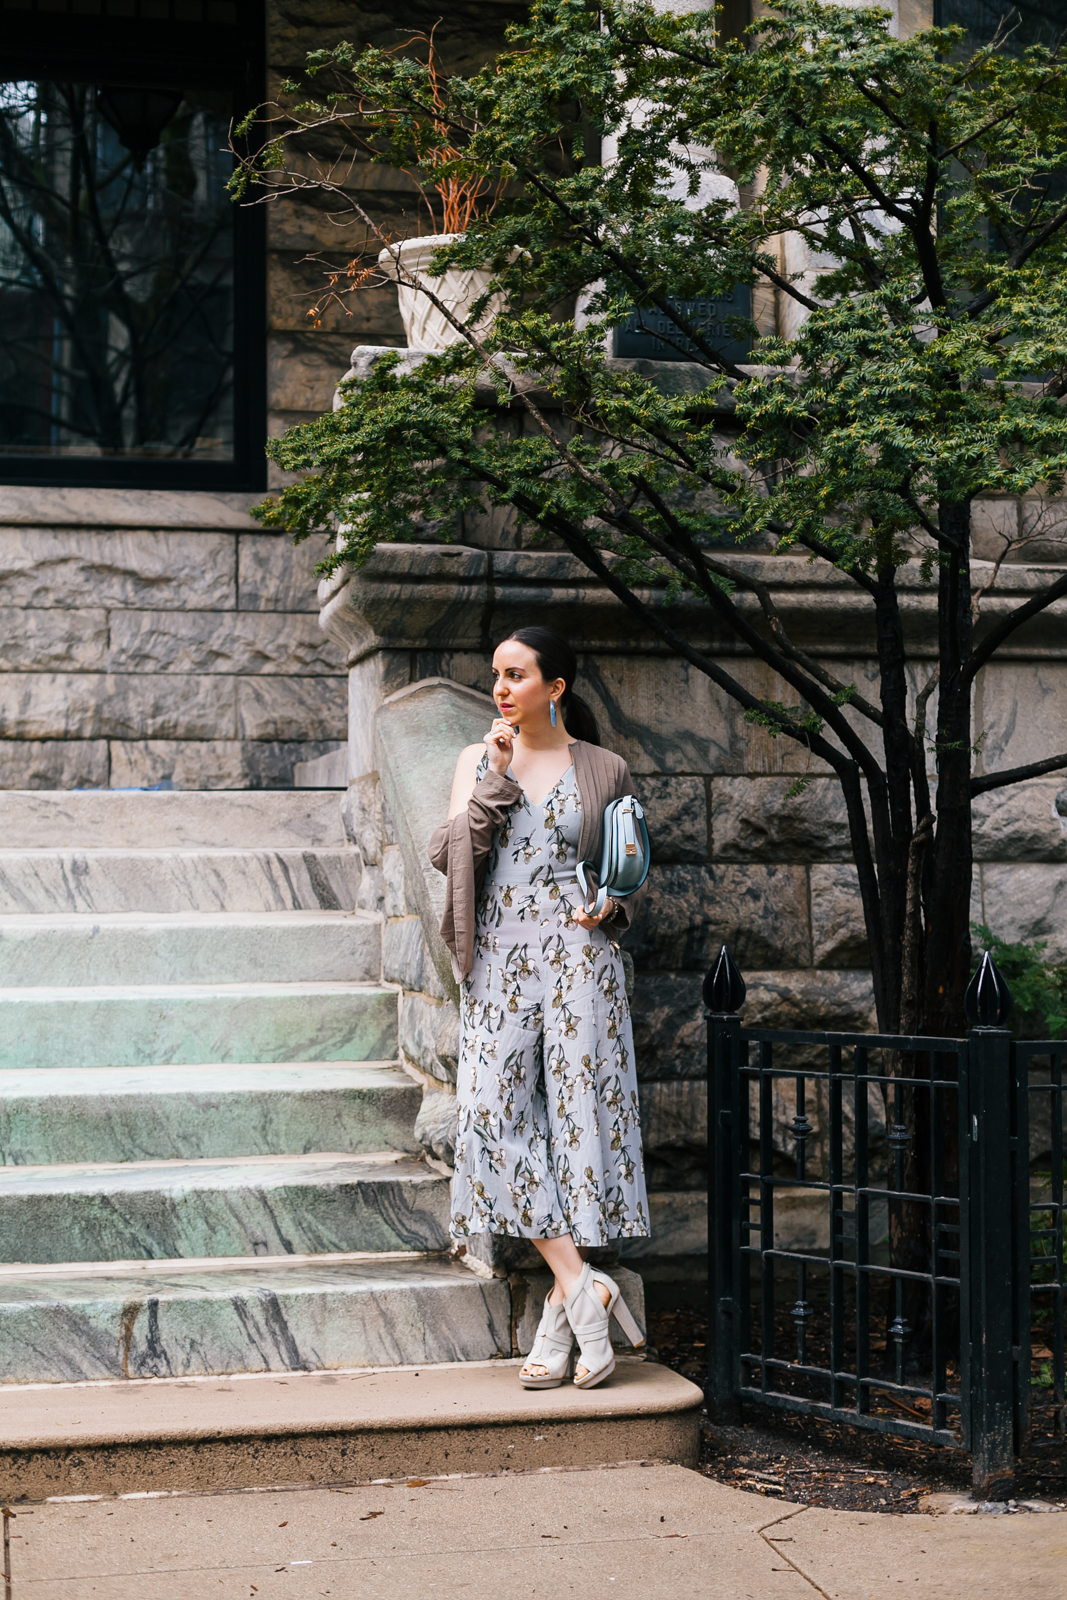 Yana Frigelis of NoMad Luxuries wearing a floral culotte jumpsuit in nuetral colors and accessories for Spring